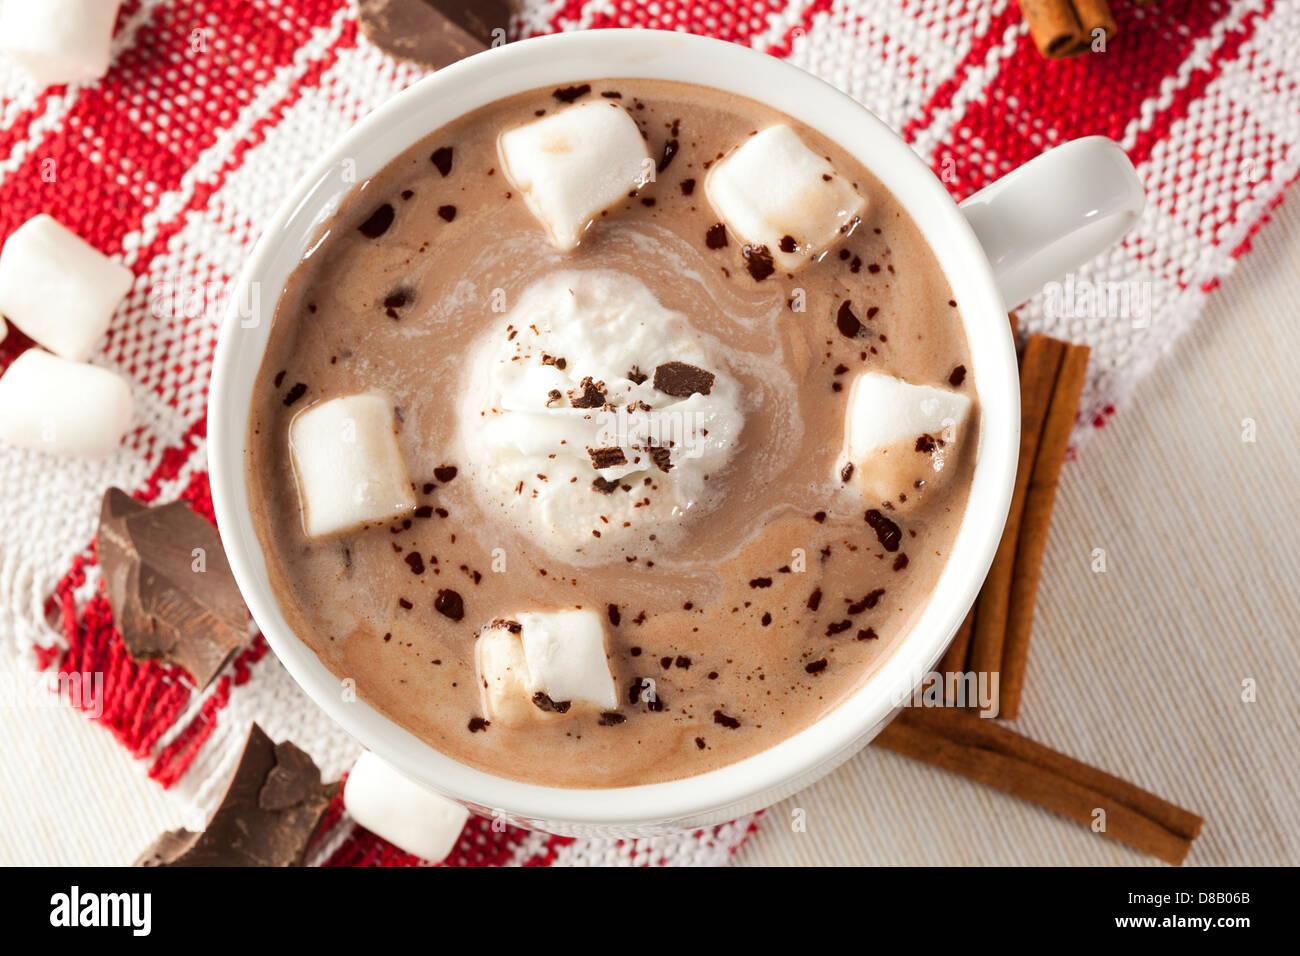 Gourmet Hot Chocolate with marshmallows and cinnamon Stock Photo ...